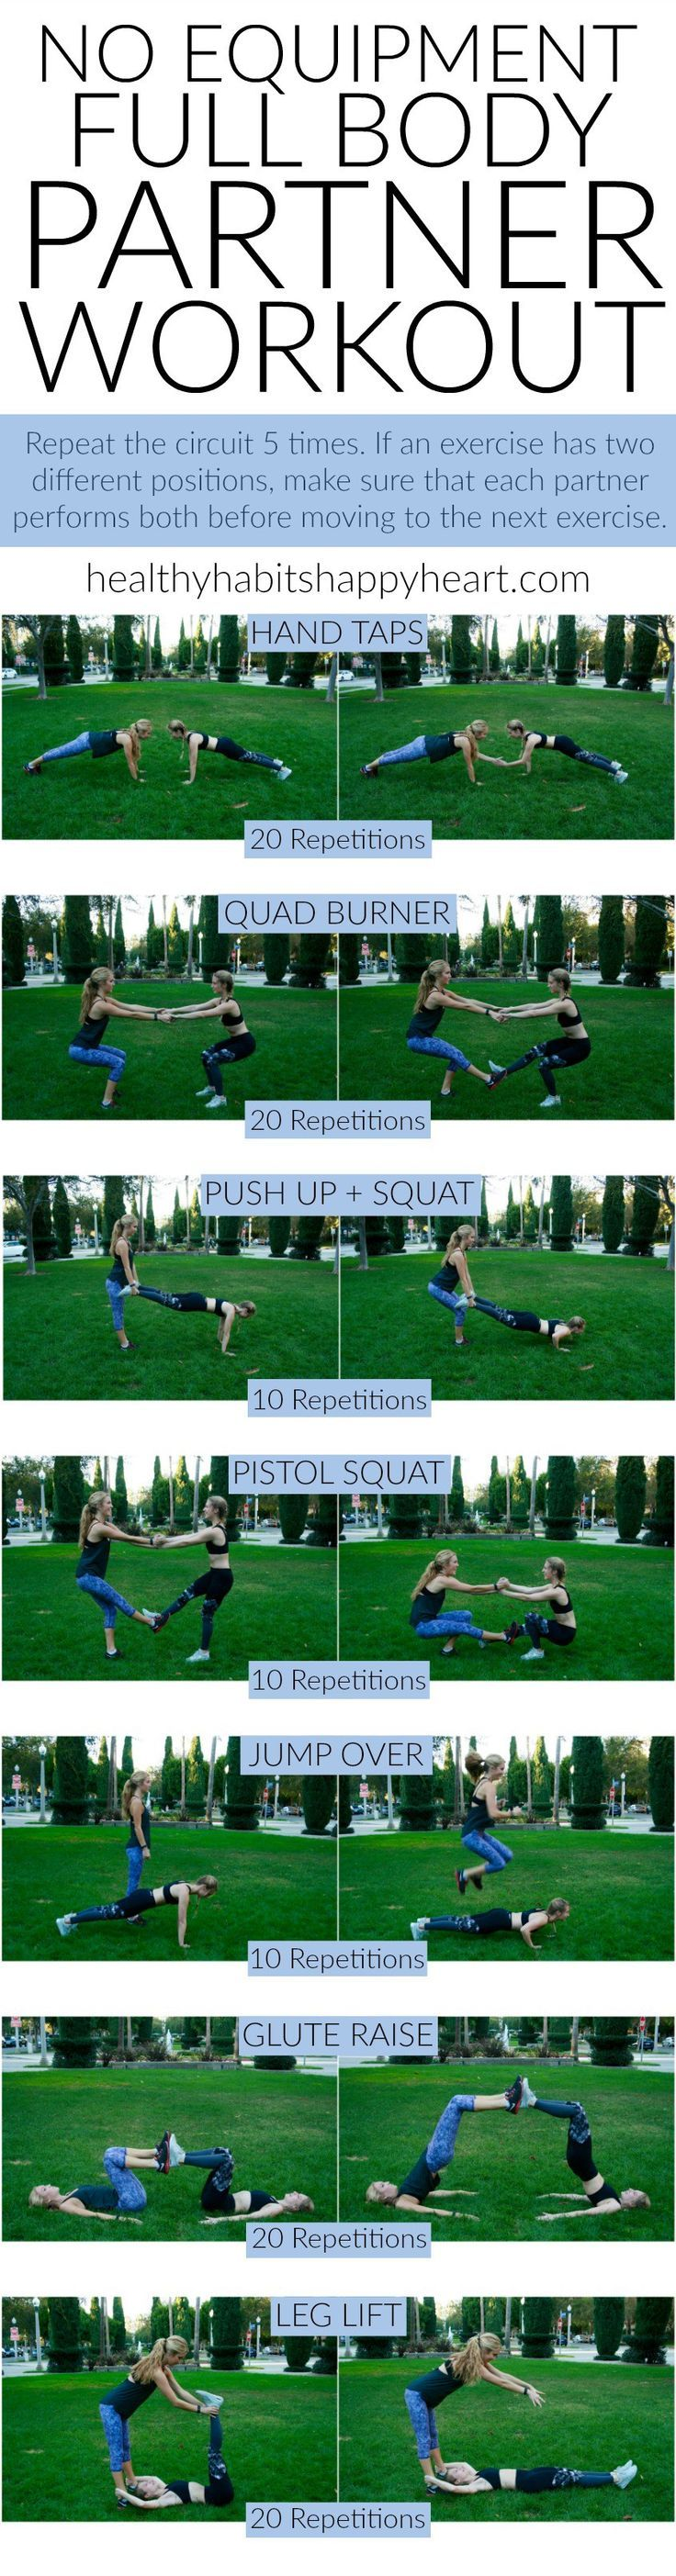 Grab a Friend & Try This Full Body Partner Workout | http://healthyhabitshappyheart.com